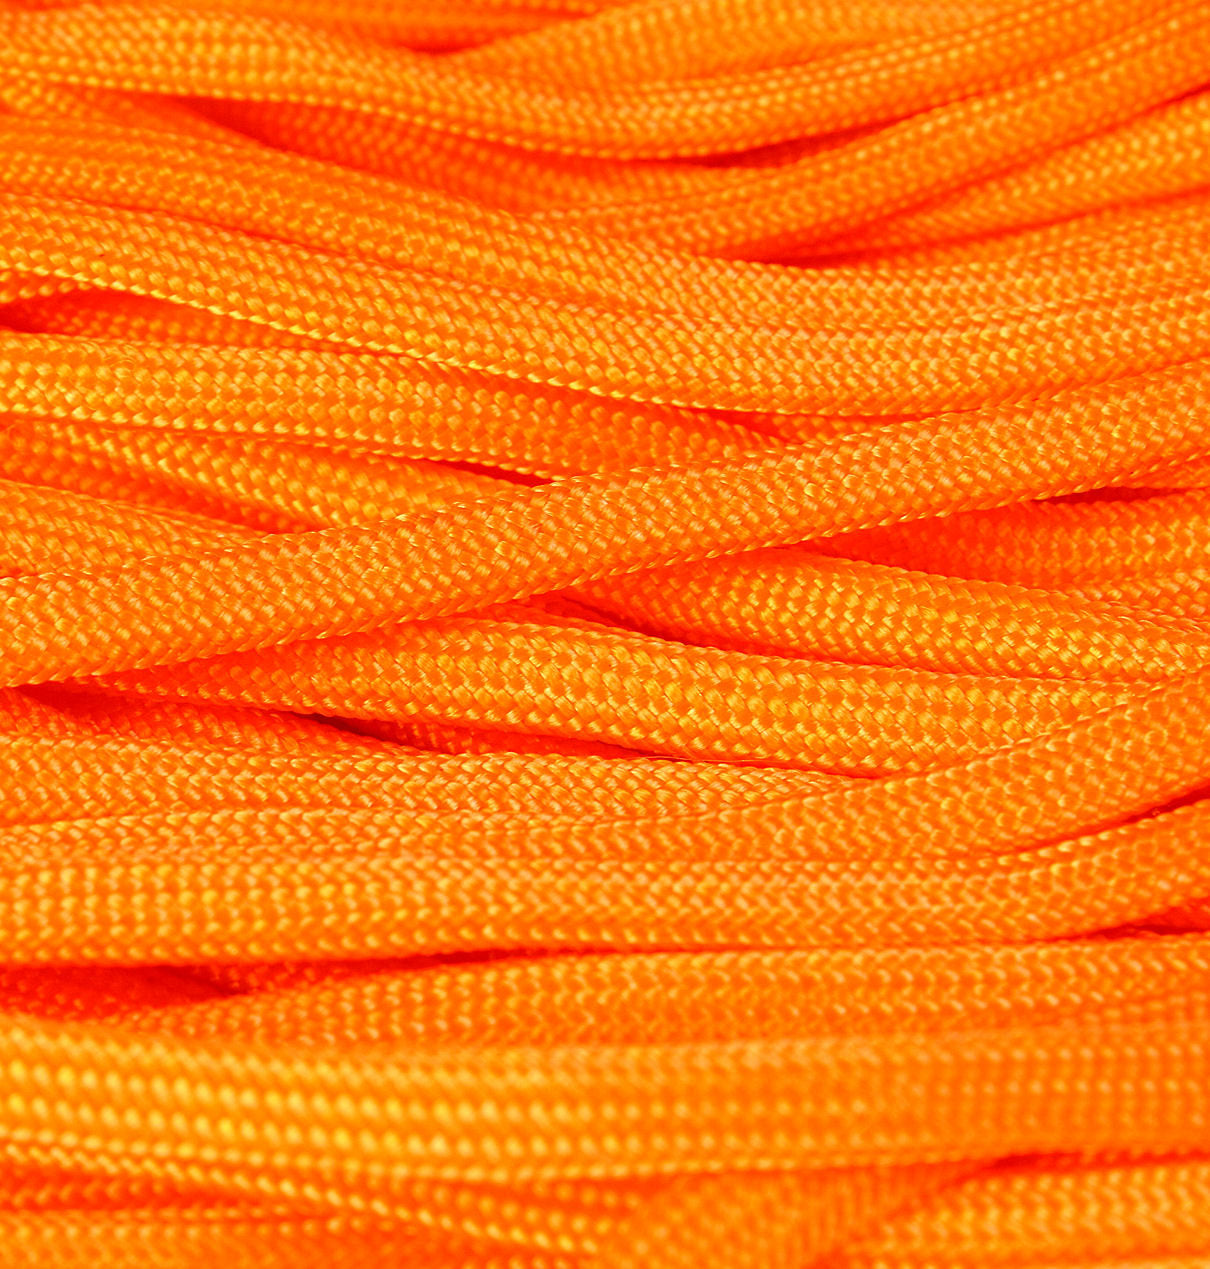 4mm Orange parachute cord - orange rope - Paracord - Para cord - 10 feet / 3 meters / 3.33 yards (1459)